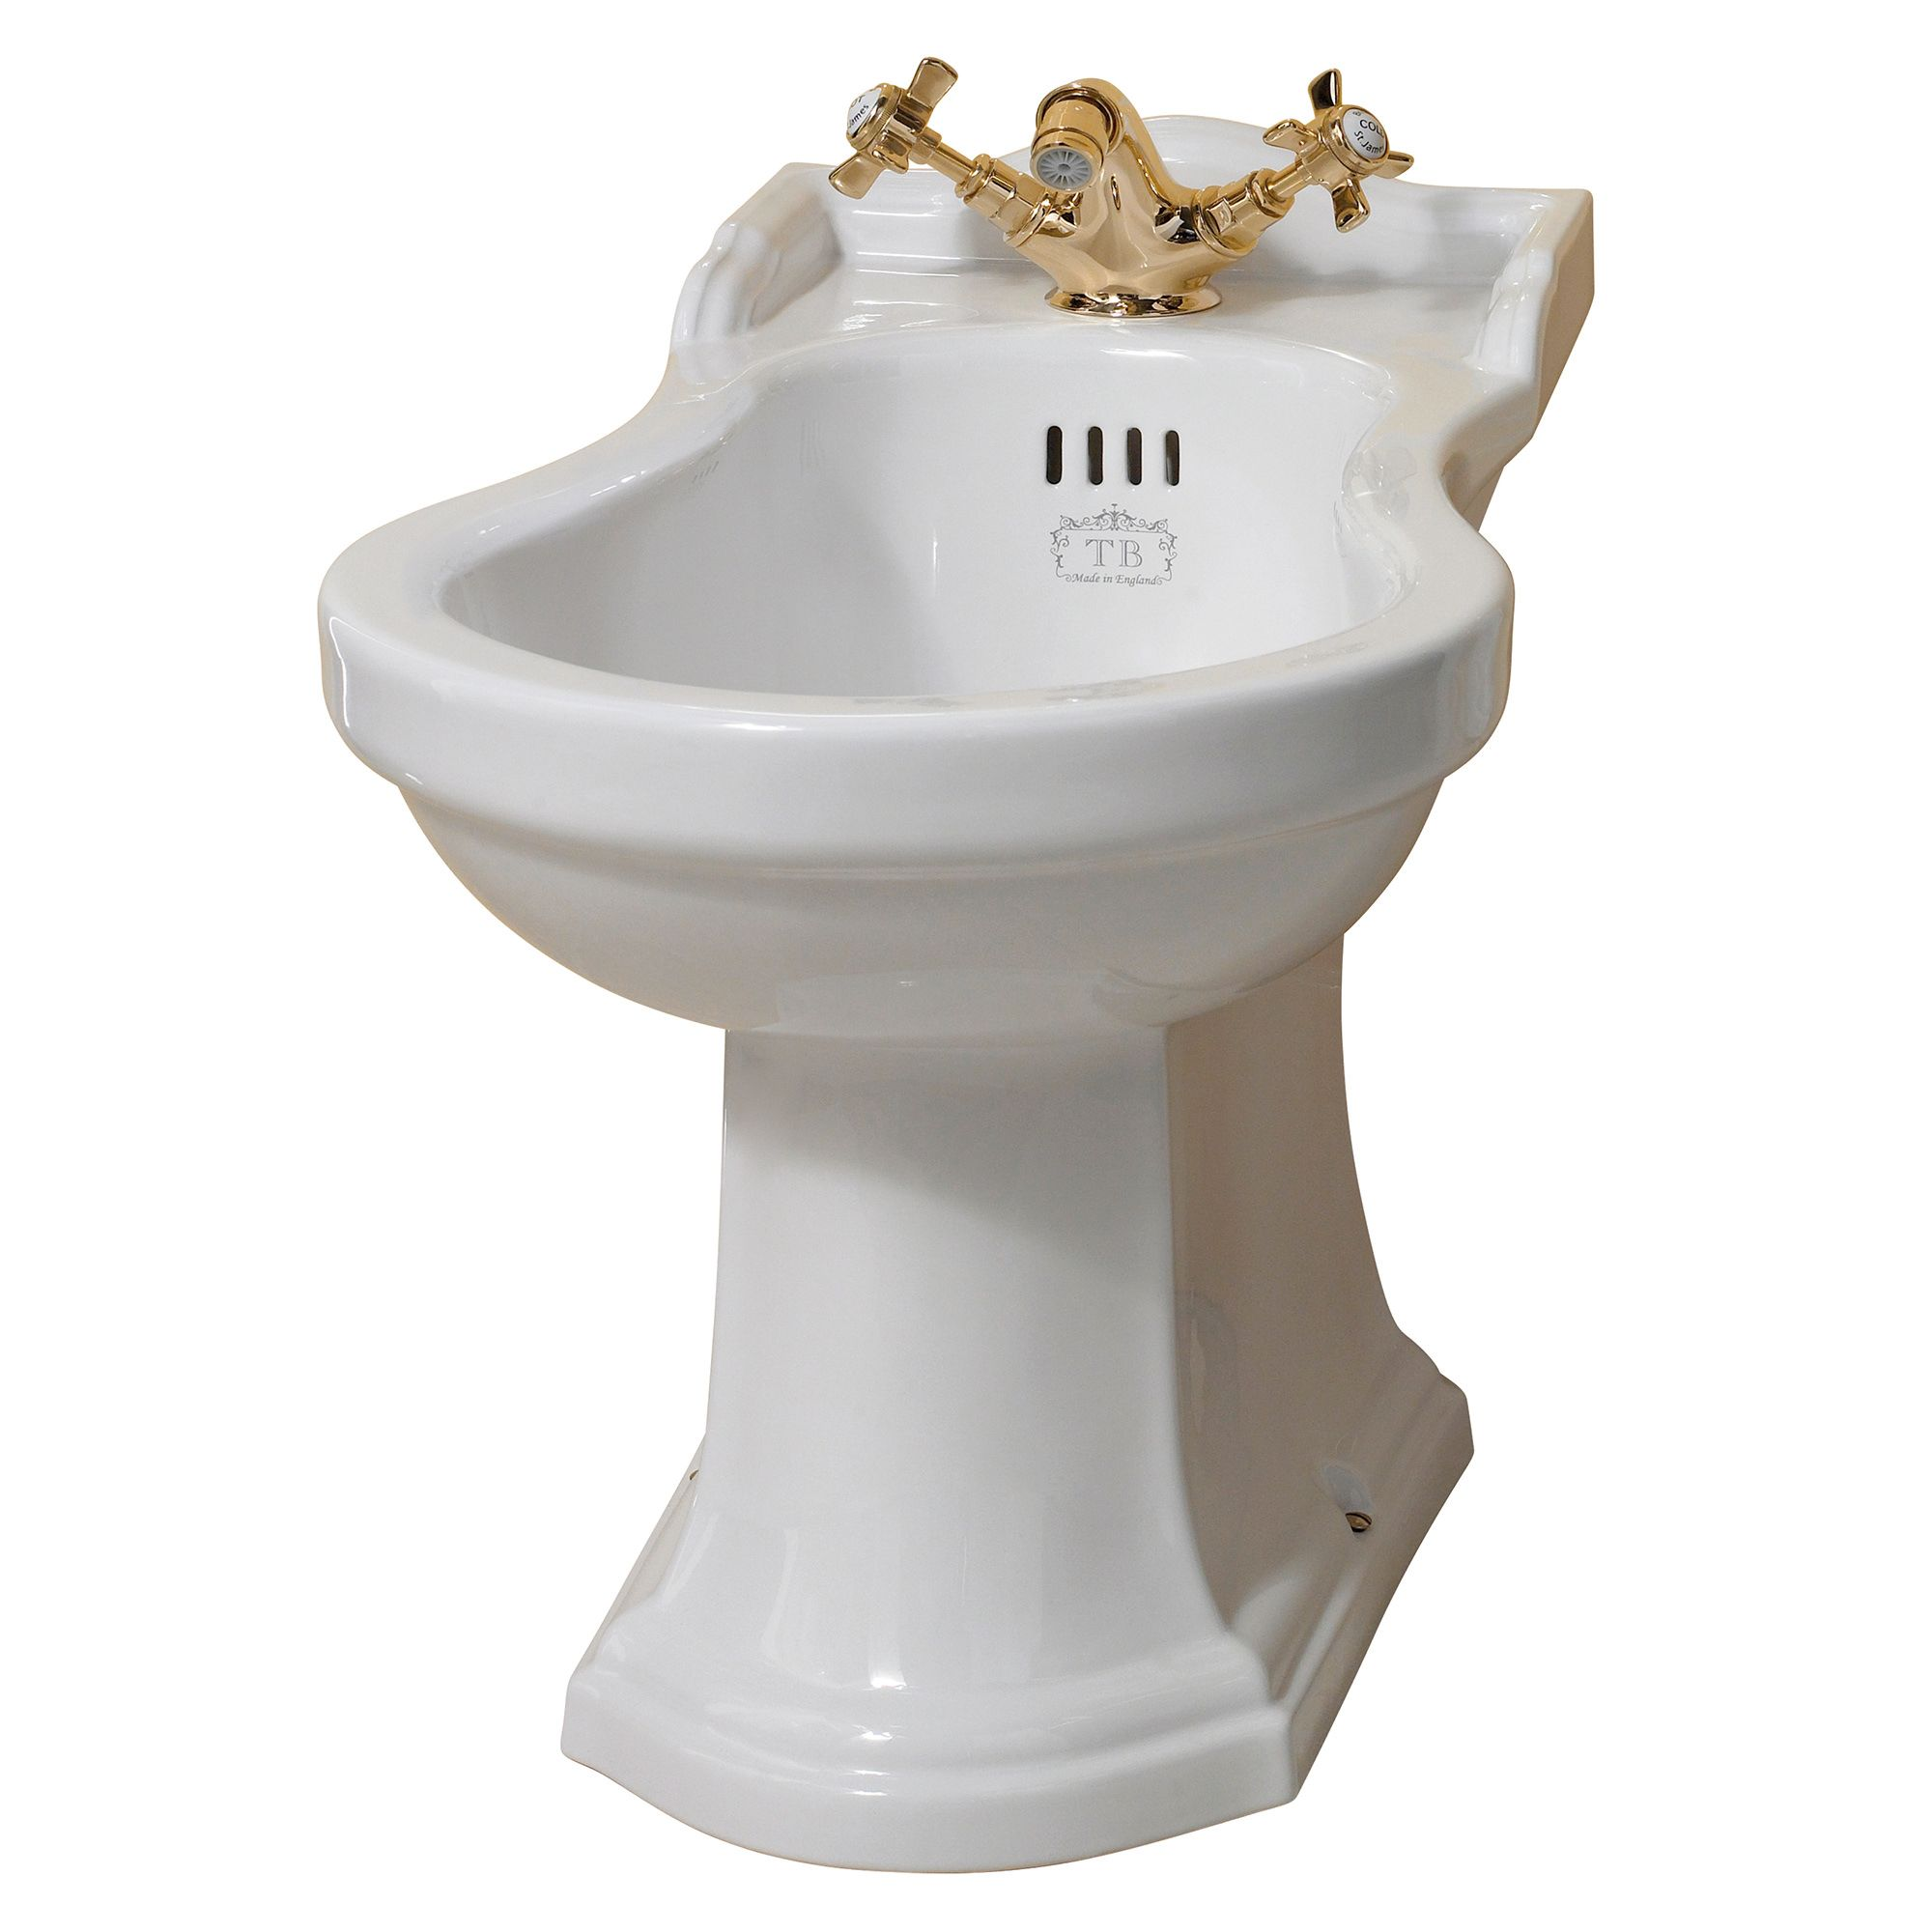 Badezimmer Retro-stil Richmond Bidet Im Retro Stil Traditional Bathrooms Retro